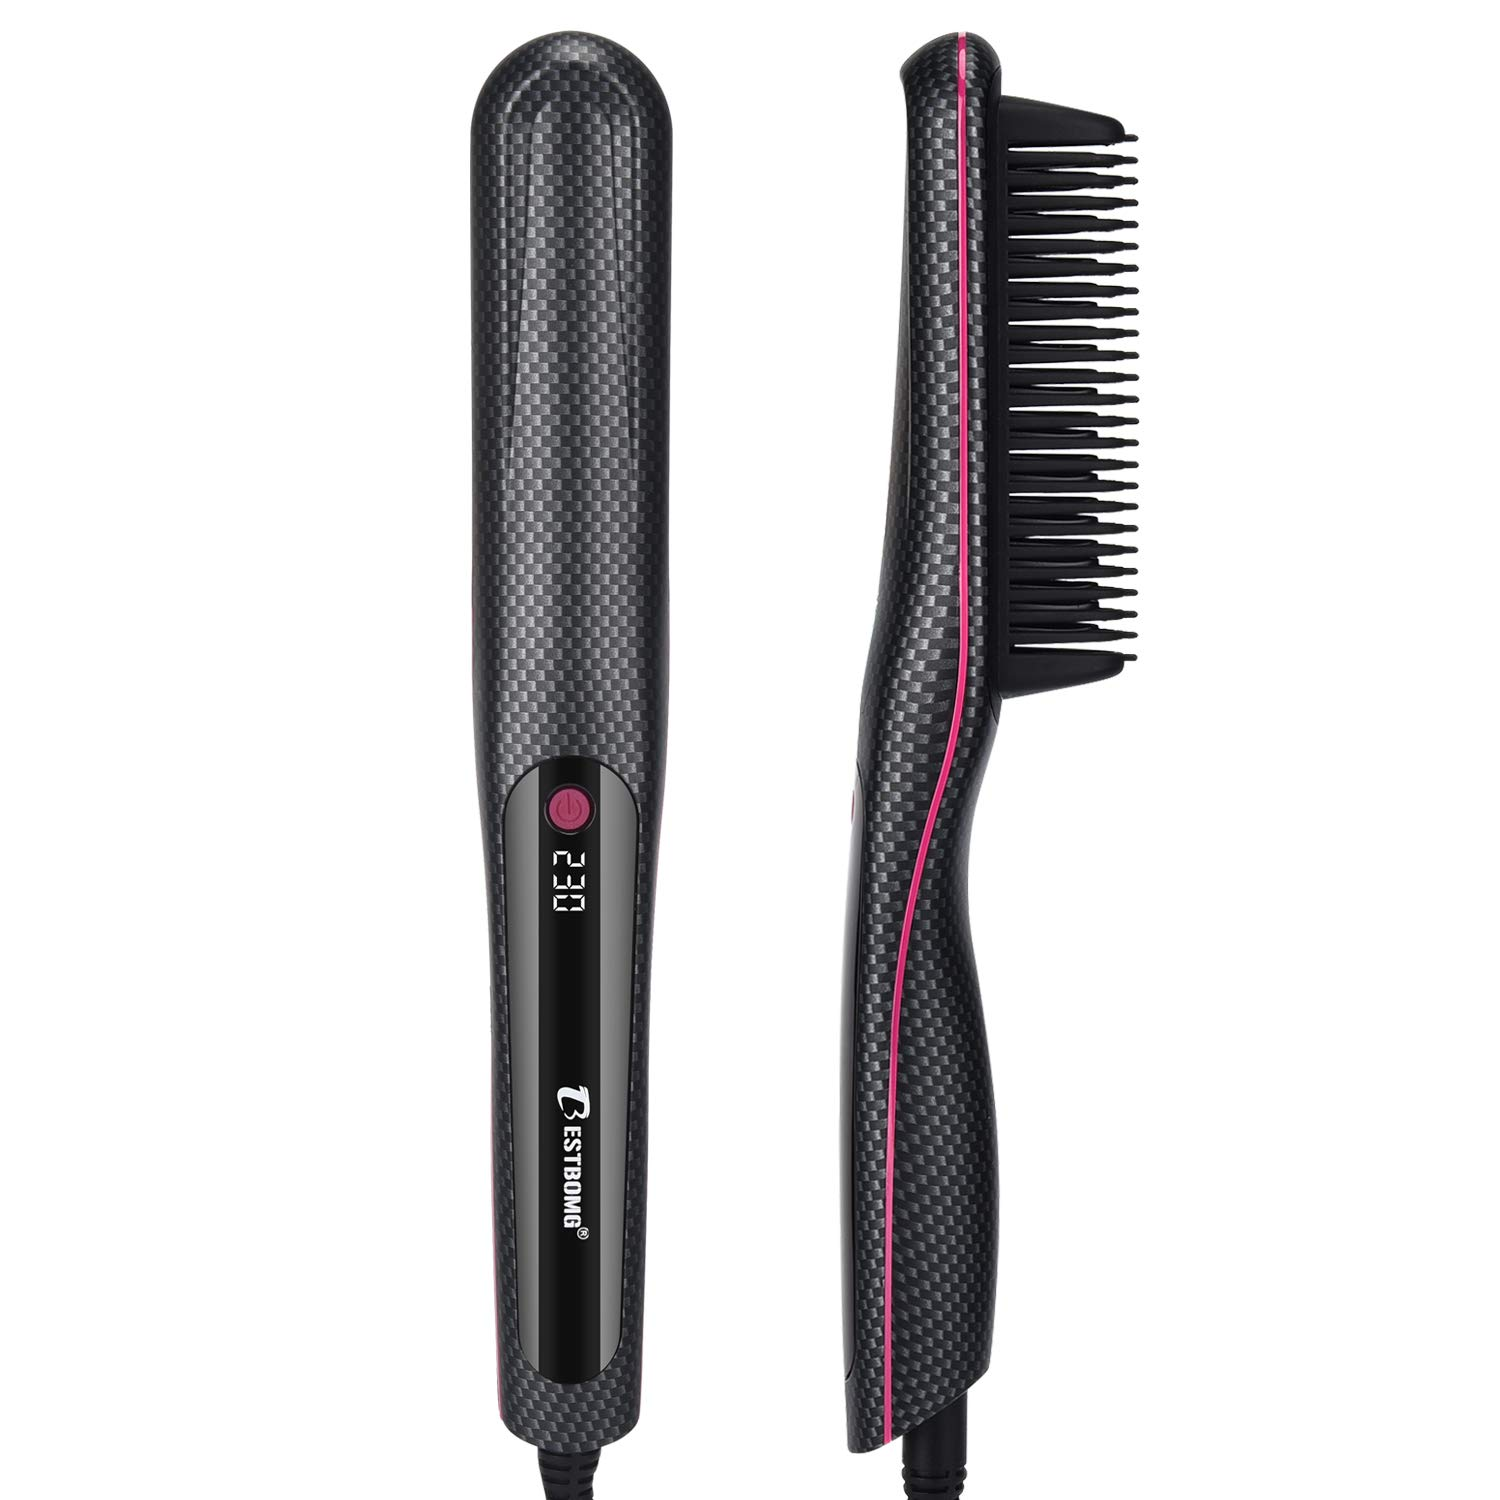 Beard Straightener Comb for Men,Hair Combs,Heat Brush,Ionic Hair Straightening Brush Instant Styling Comb for Women-Curling and Straightening All Kinds of Hair and Beard with Fast Heat 110V-220V